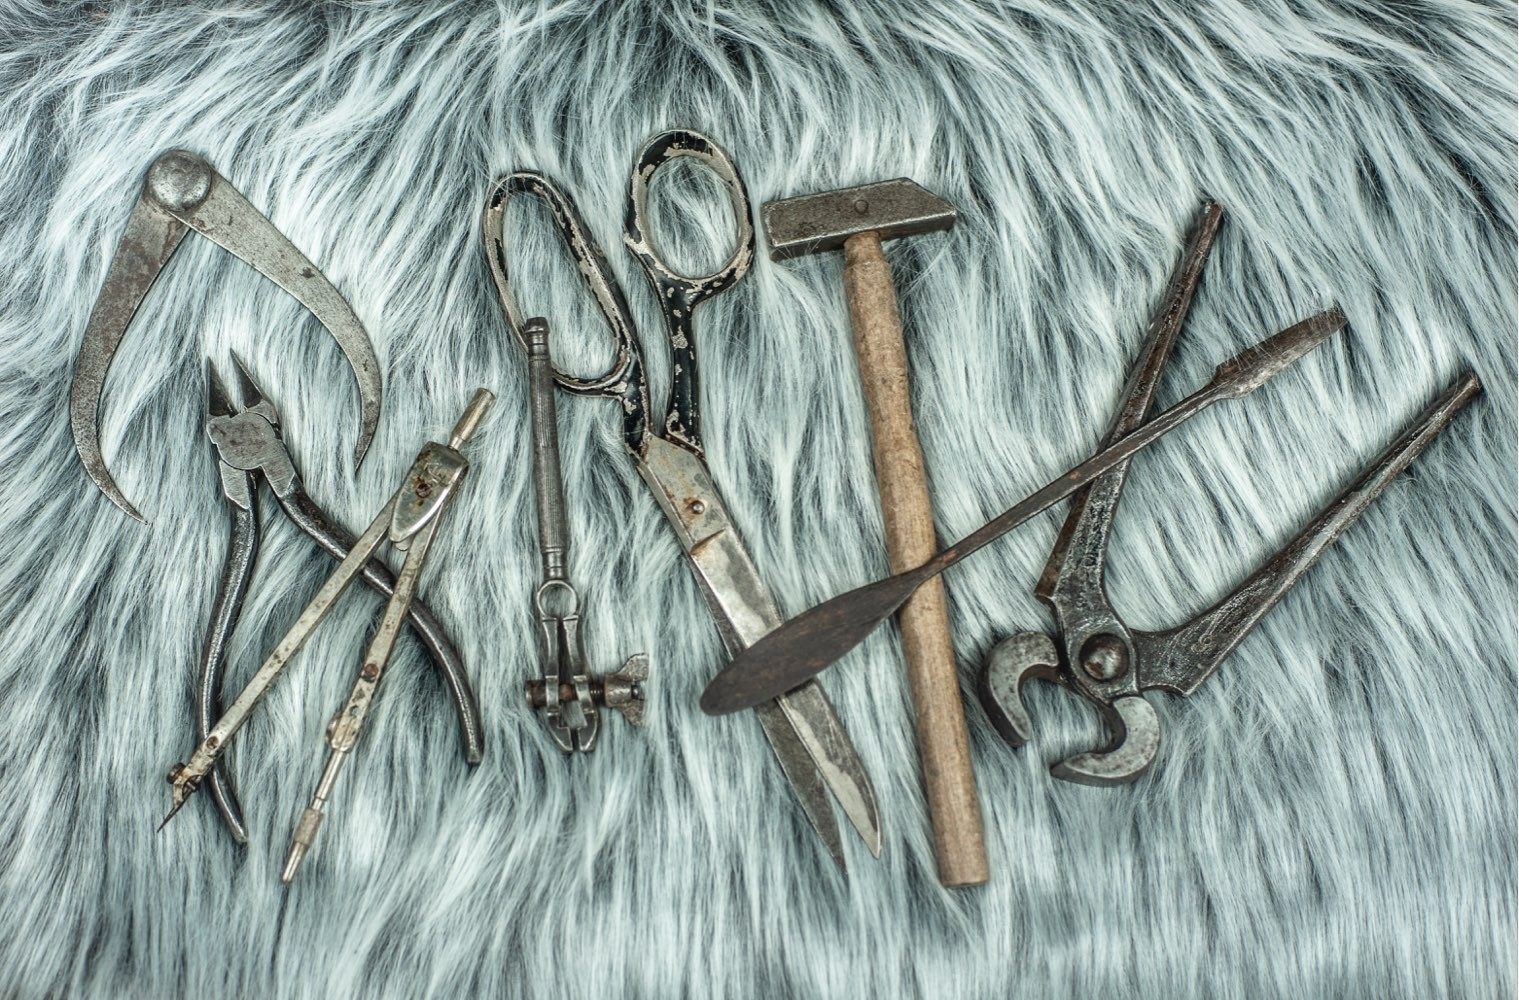 Some of the hand tools we use regularly at work displayed on grey faux fur